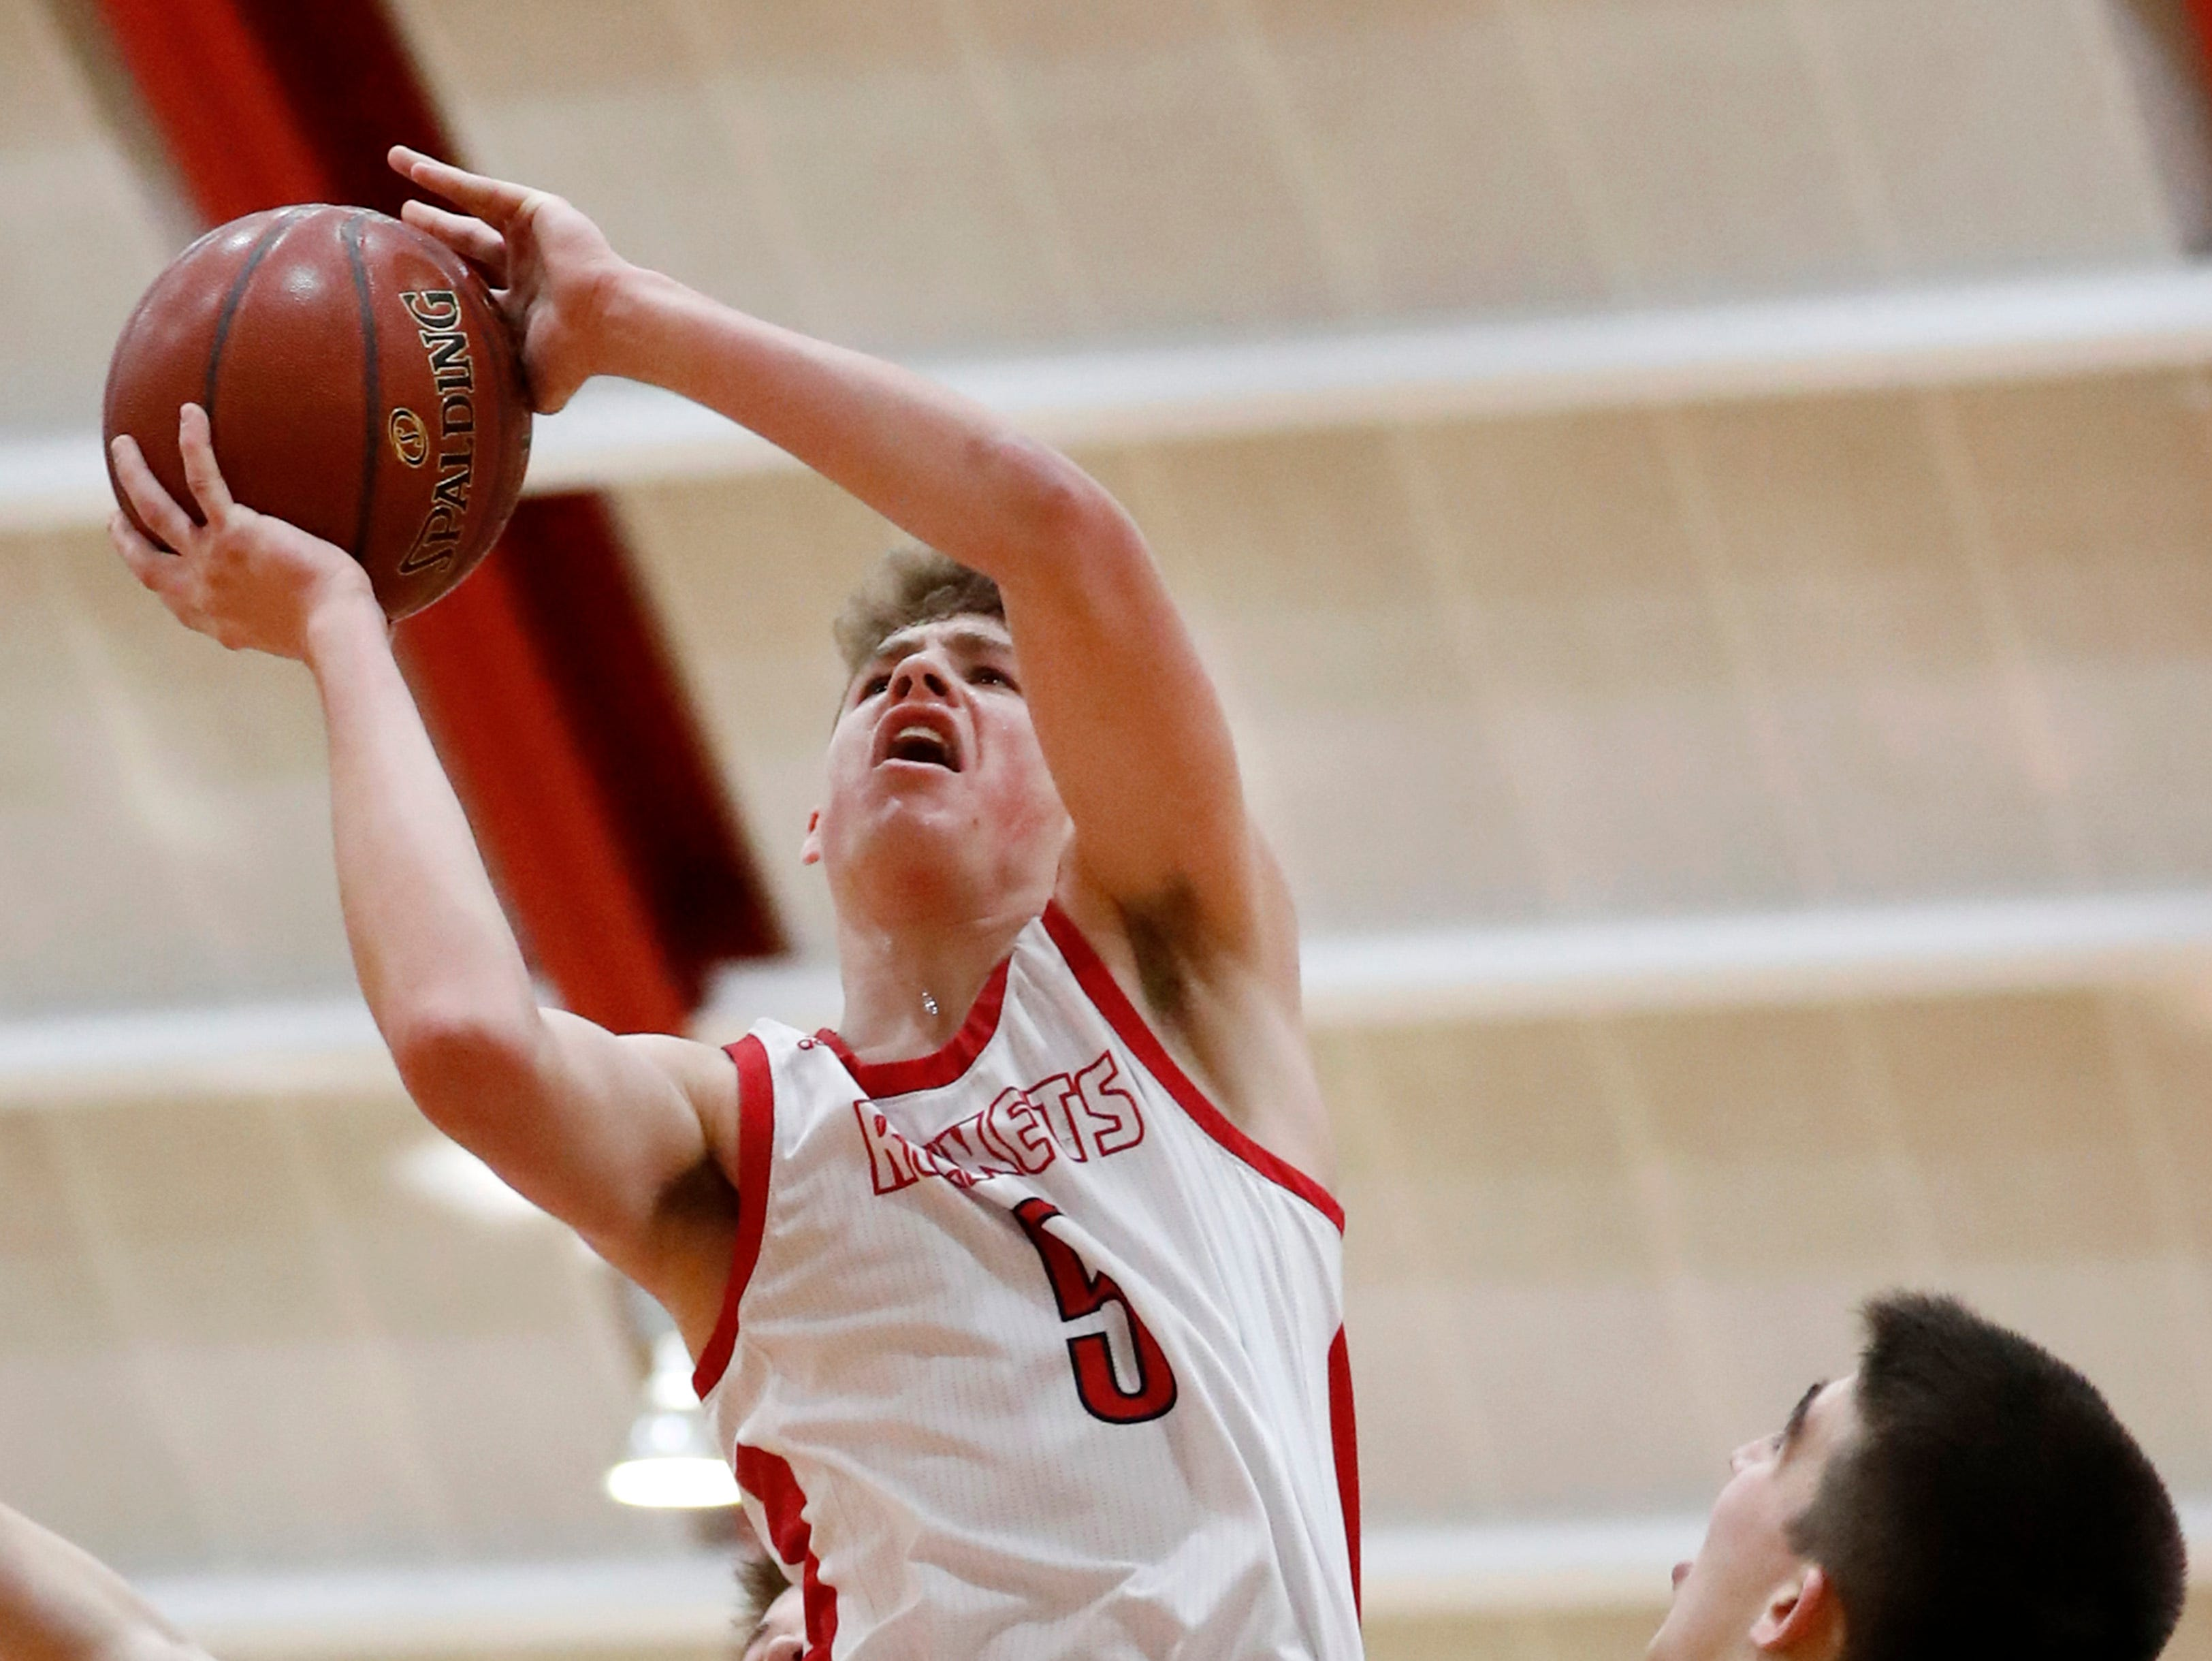 Neenah High SchoolÕs Max Klesmit jumps to the basket against Oshkosh North High School Friday, Jan. 18, 2019, in Neenah, Wis.